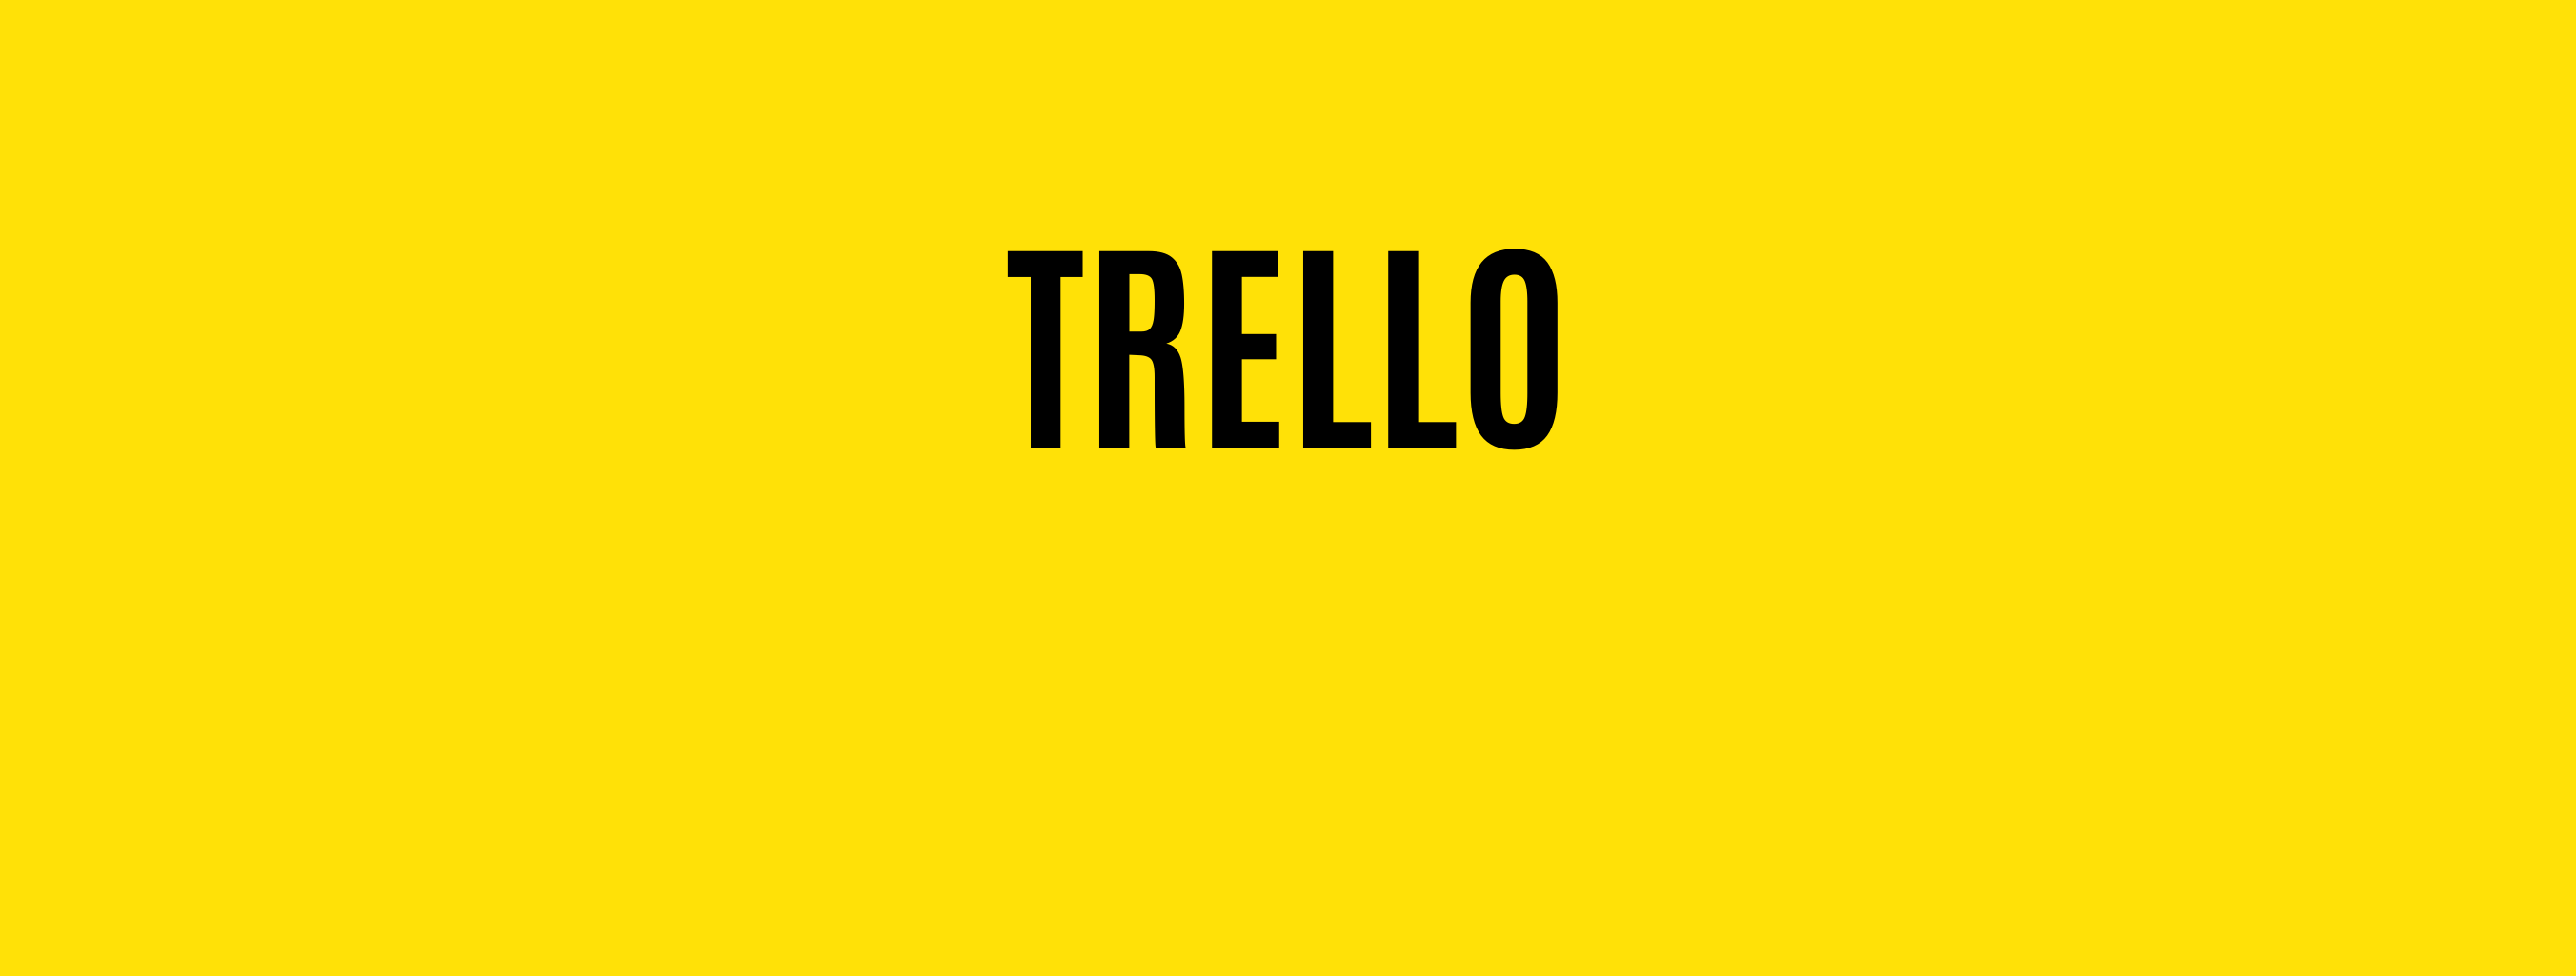 Hire Trello Project Managers & Assistants